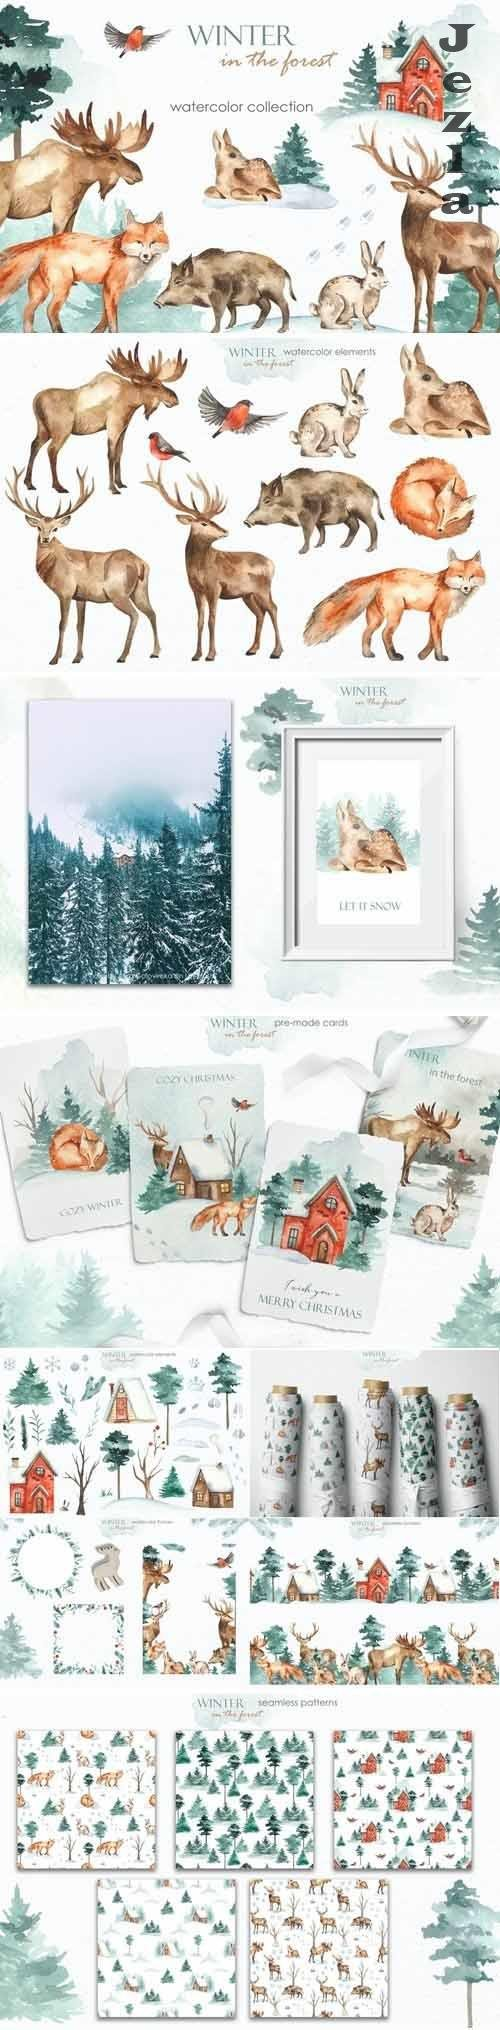 Winter in the forest watercolor - 5634801